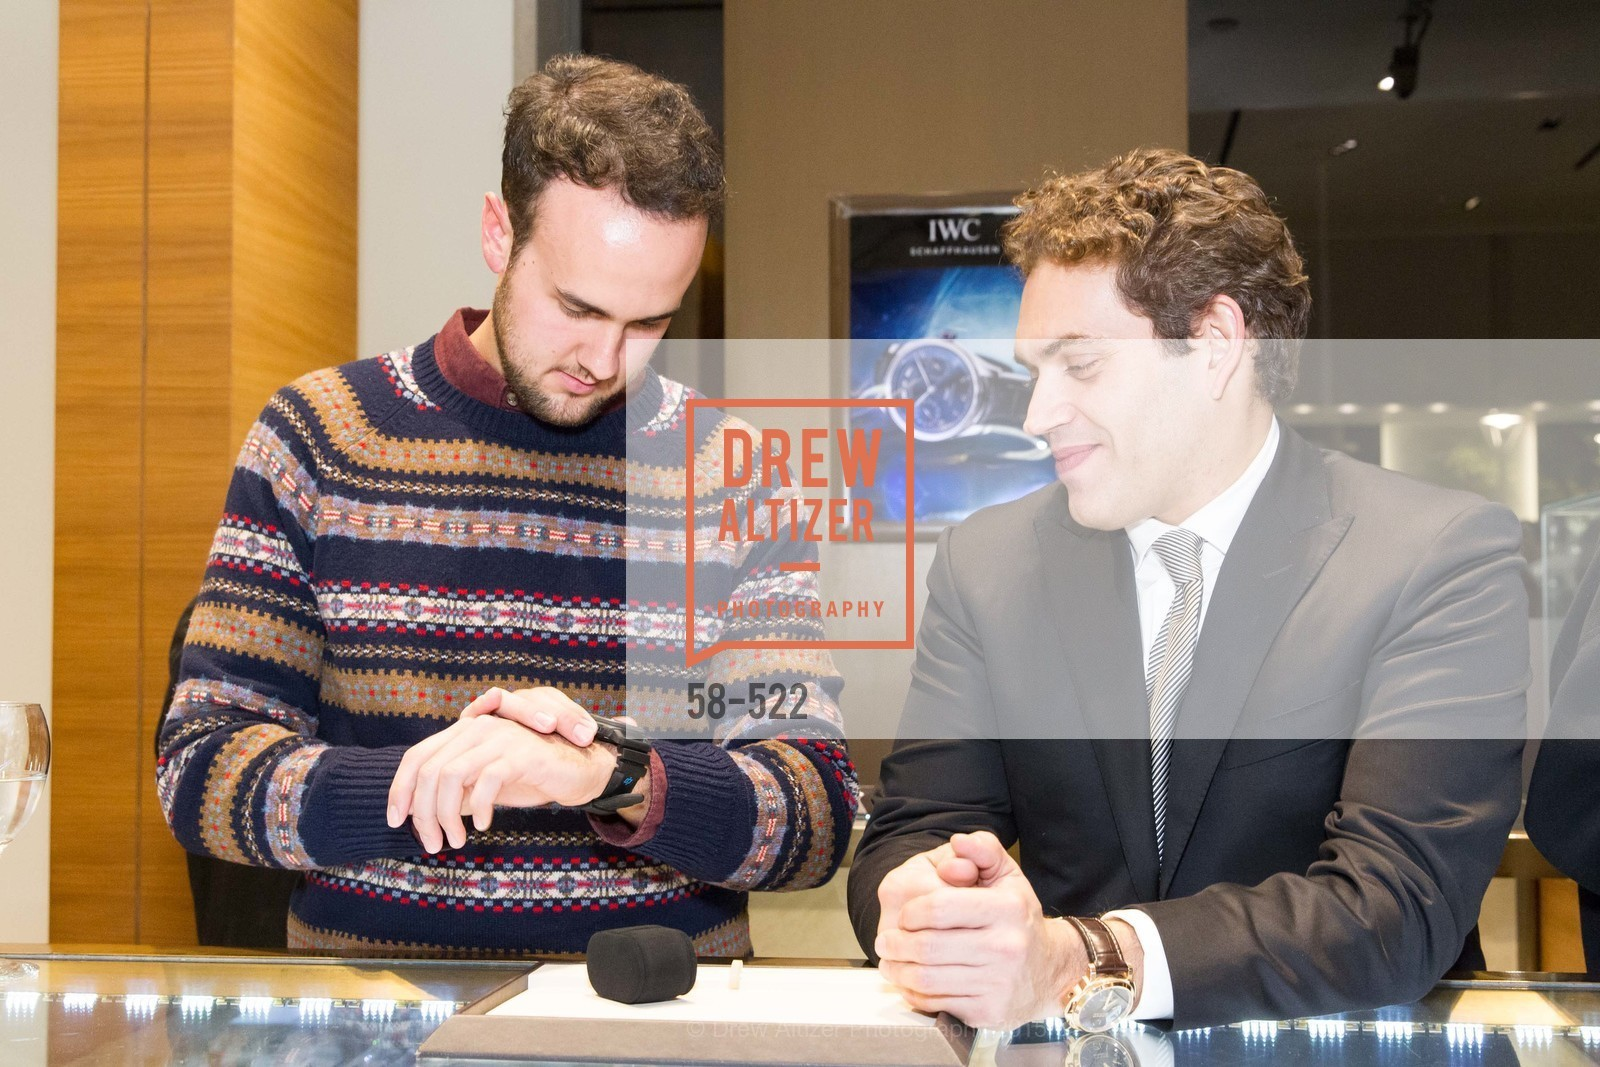 Rob Carroll, Rafael Alvarez, Shreve & Co of Palo Alto Presents The Panerai Collections, Shreve. 329 Stanford Shopping Center, November 11th, 2015,Drew Altizer, Drew Altizer Photography, full-service agency, private events, San Francisco photographer, photographer california